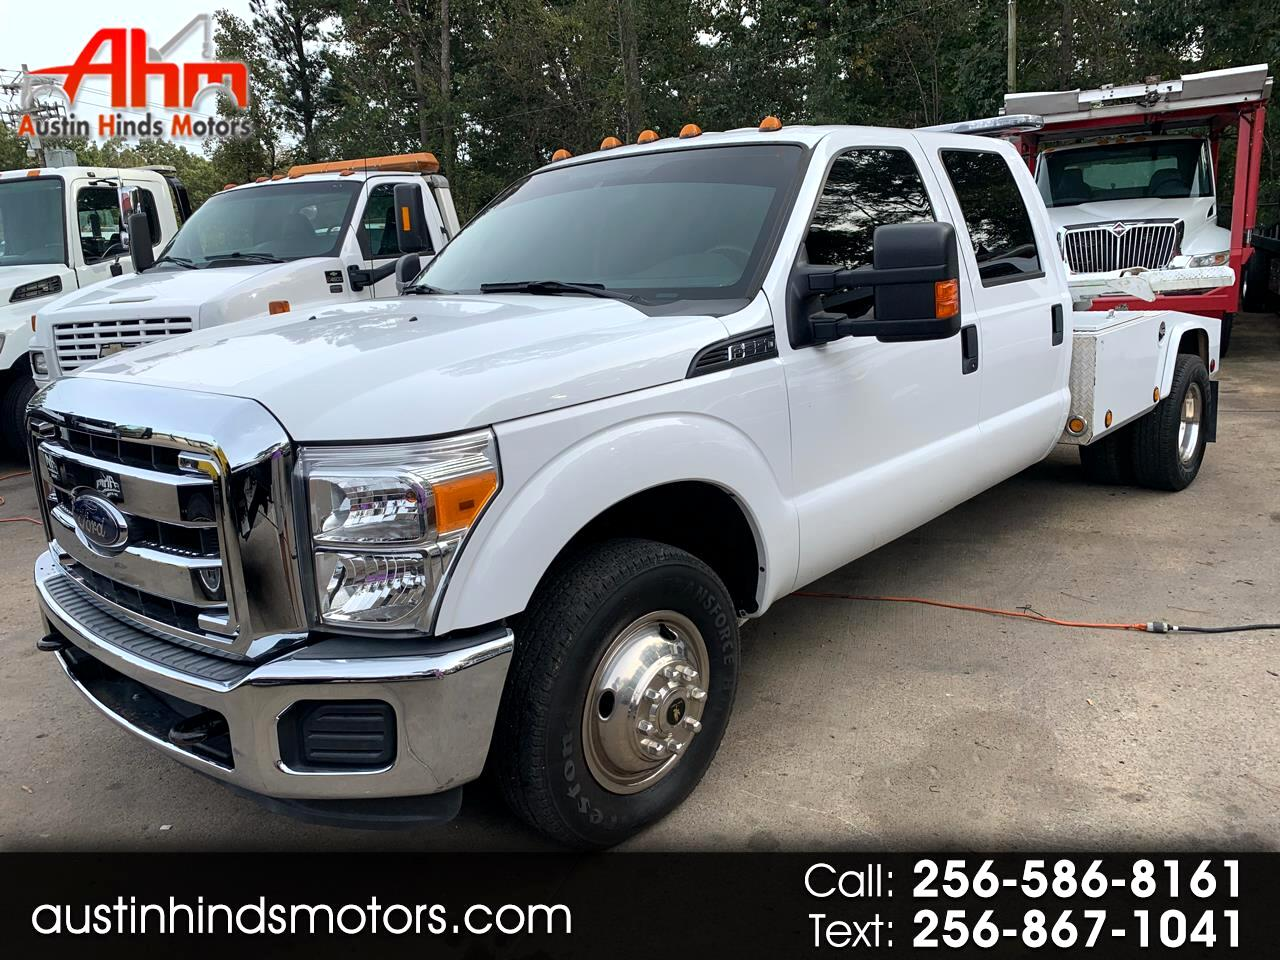 2014 Ford F-350 Crew Cab 4dr 168.4